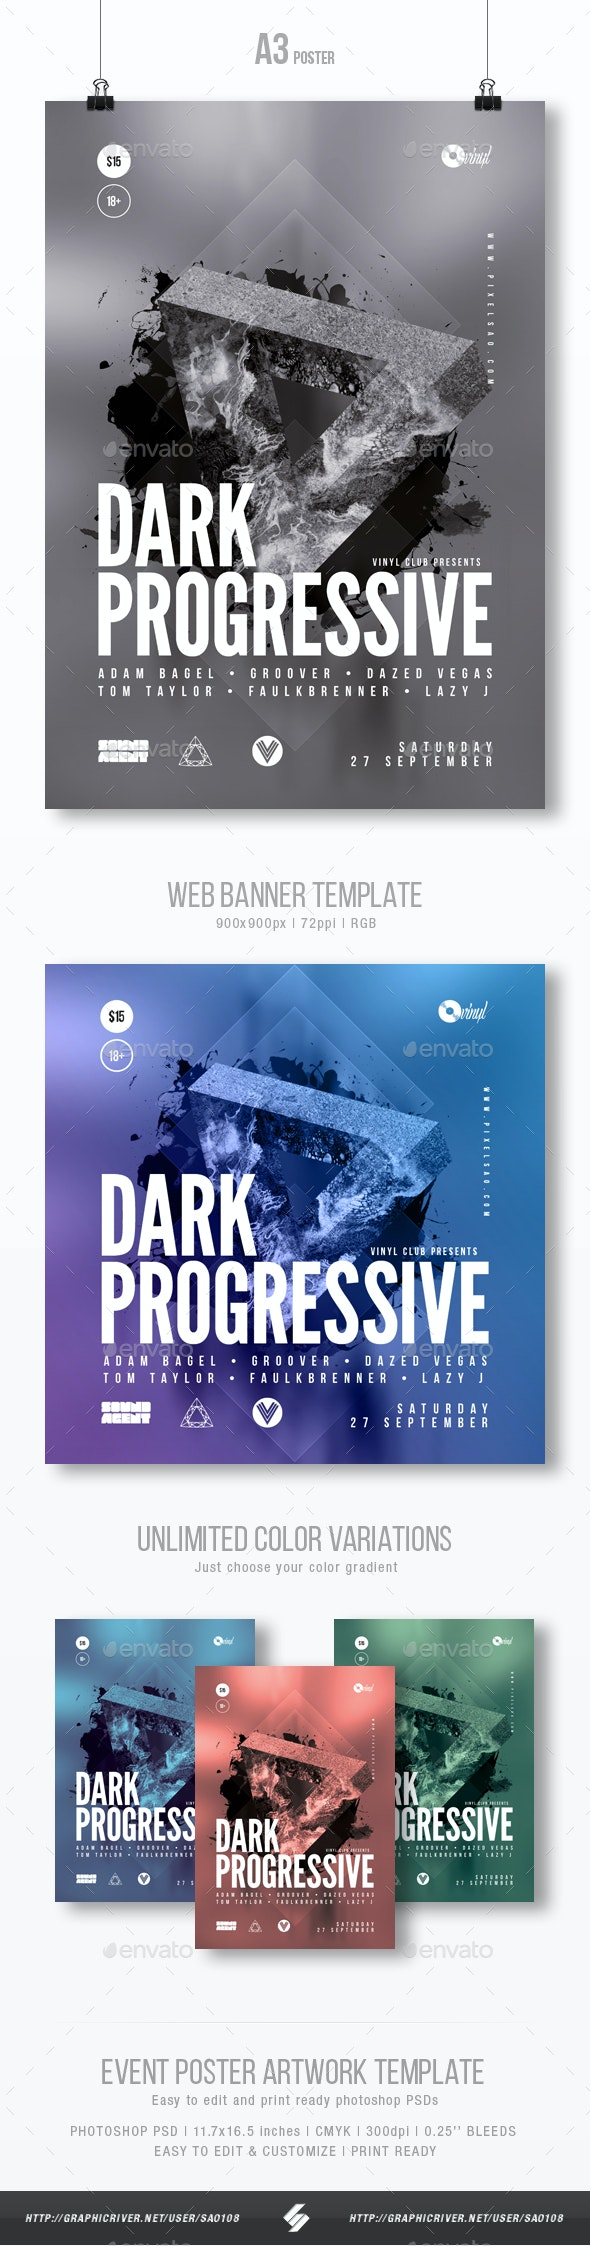 Dark Progressive - Party Flyer / Poster Template A3 - Clubs & Parties Events